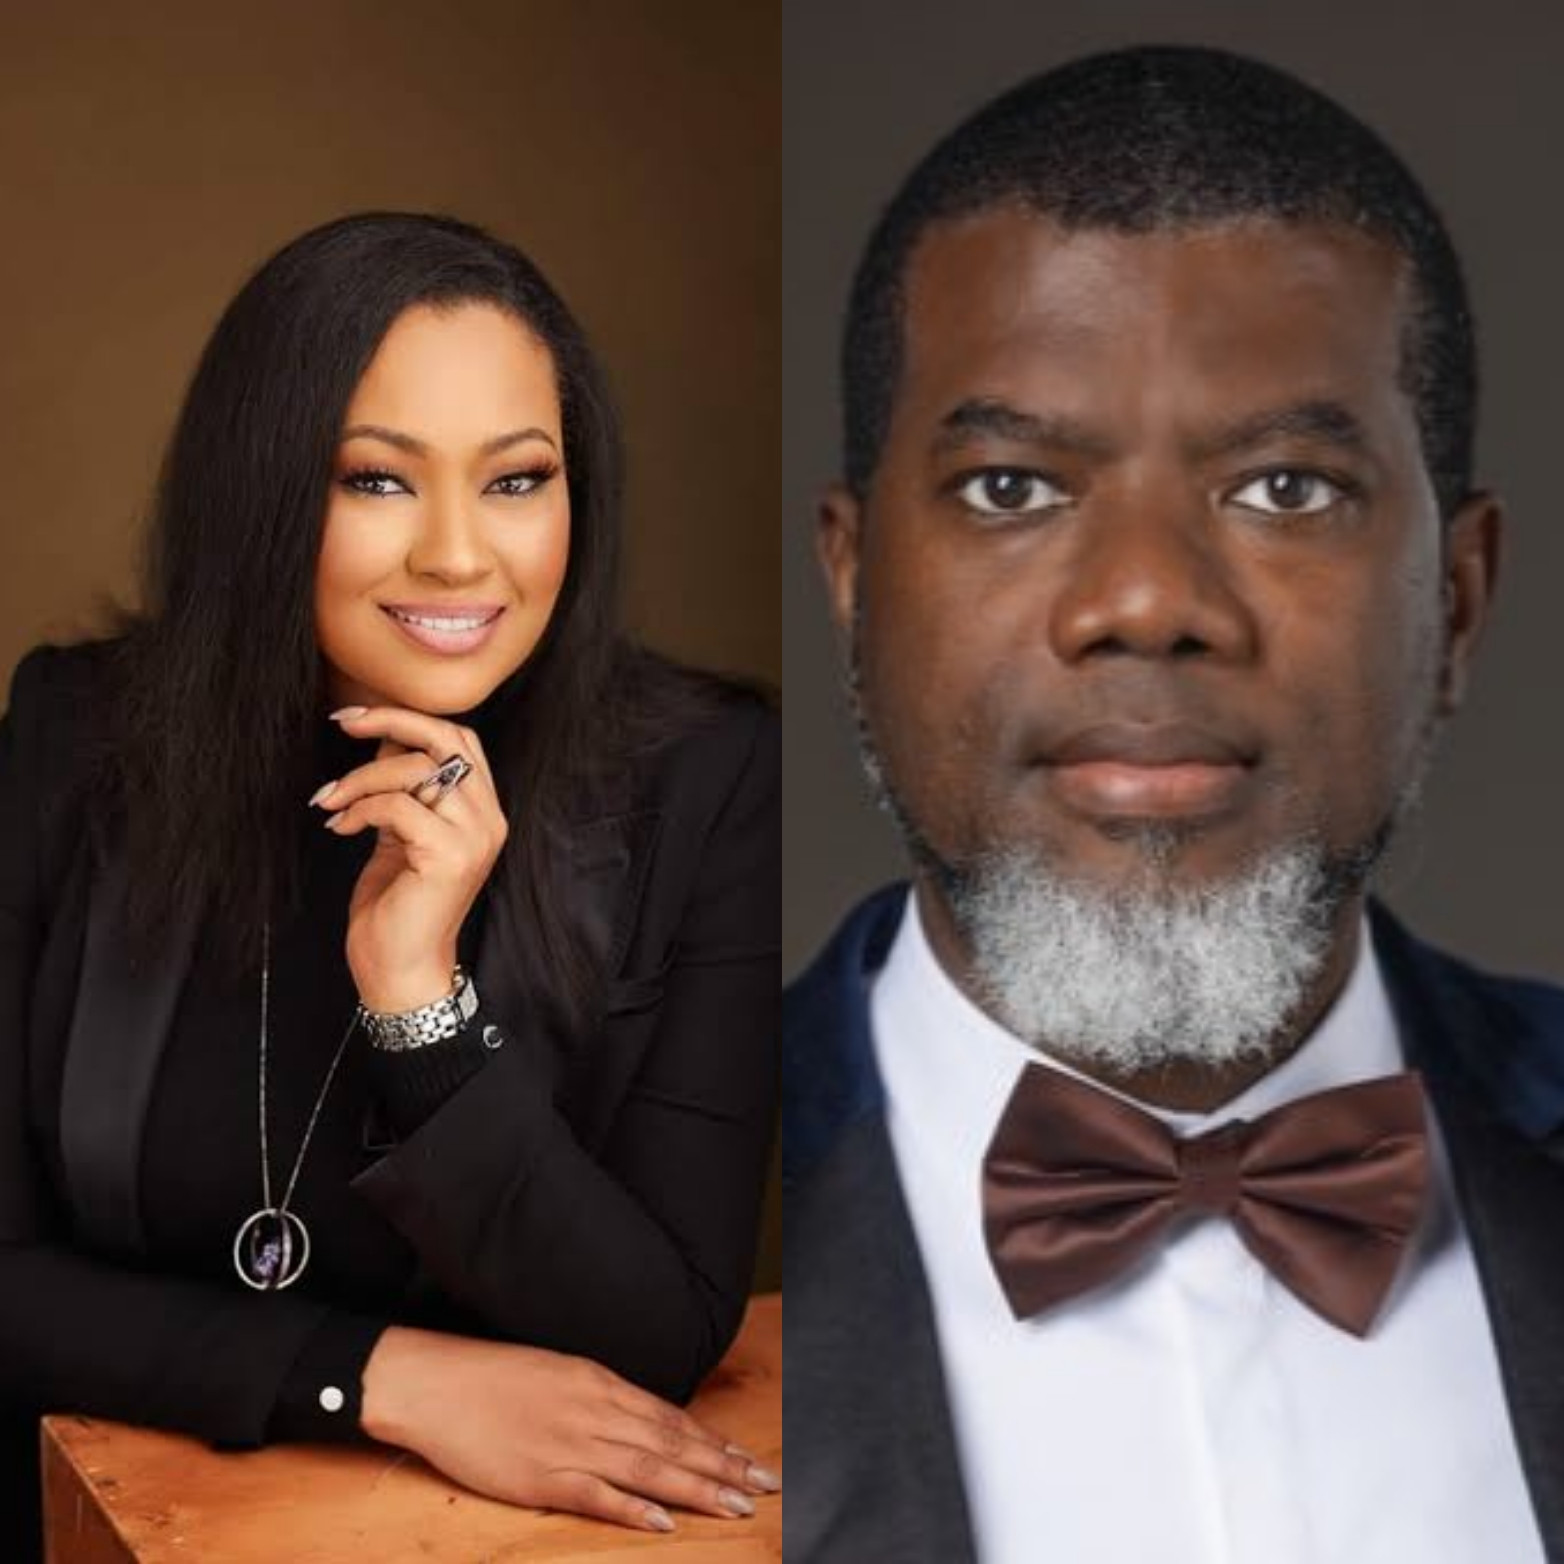 Reno Omokri offers ,000 to anyone who can provide photo of him at the Aso Villa event where Natasha Akpoti claimed he made a pass at her